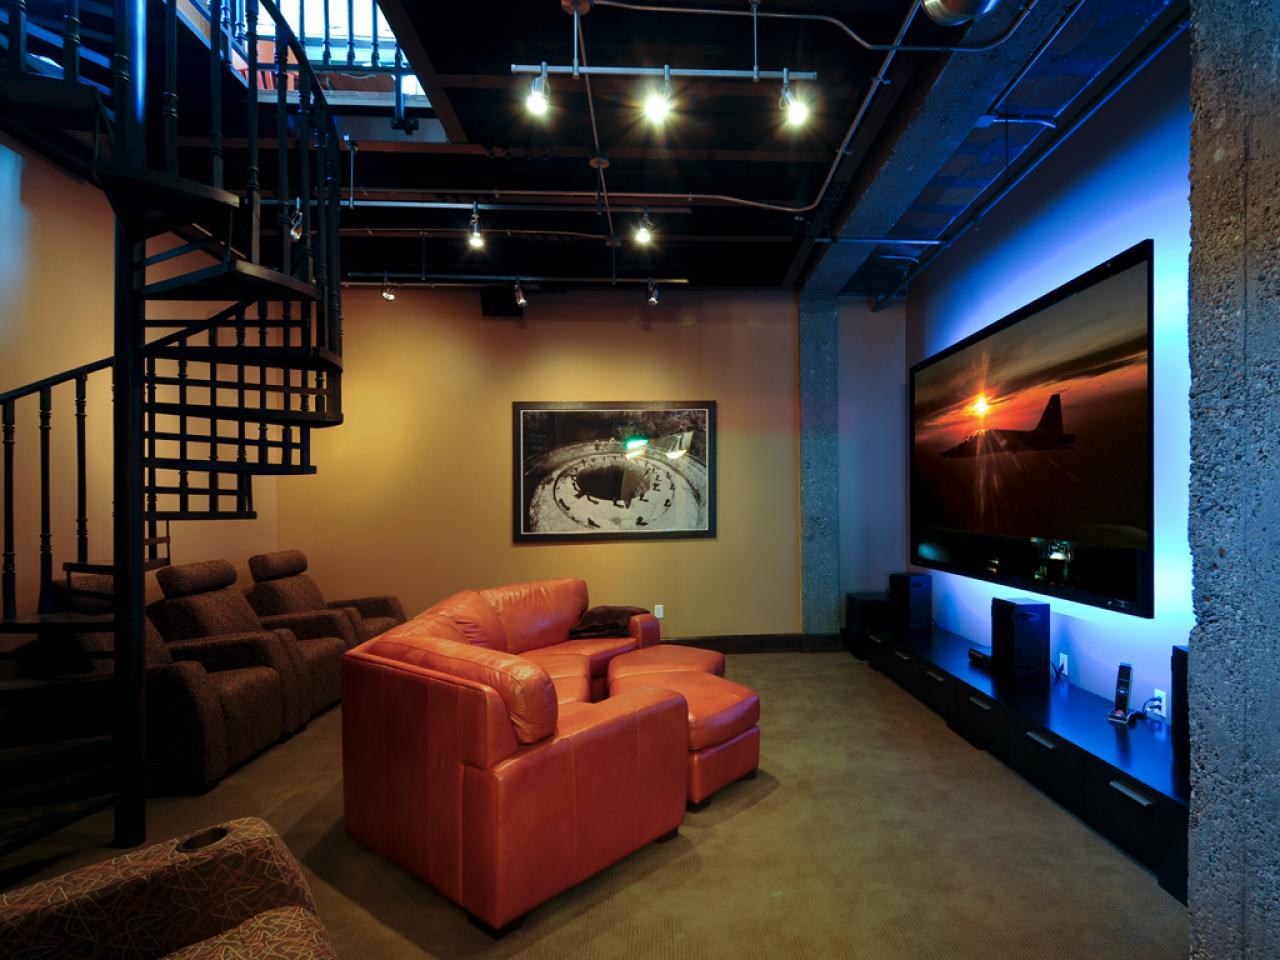 Home Basement Designs Interior Magnificent Basement Design And Layout  Hgtv Design Ideas